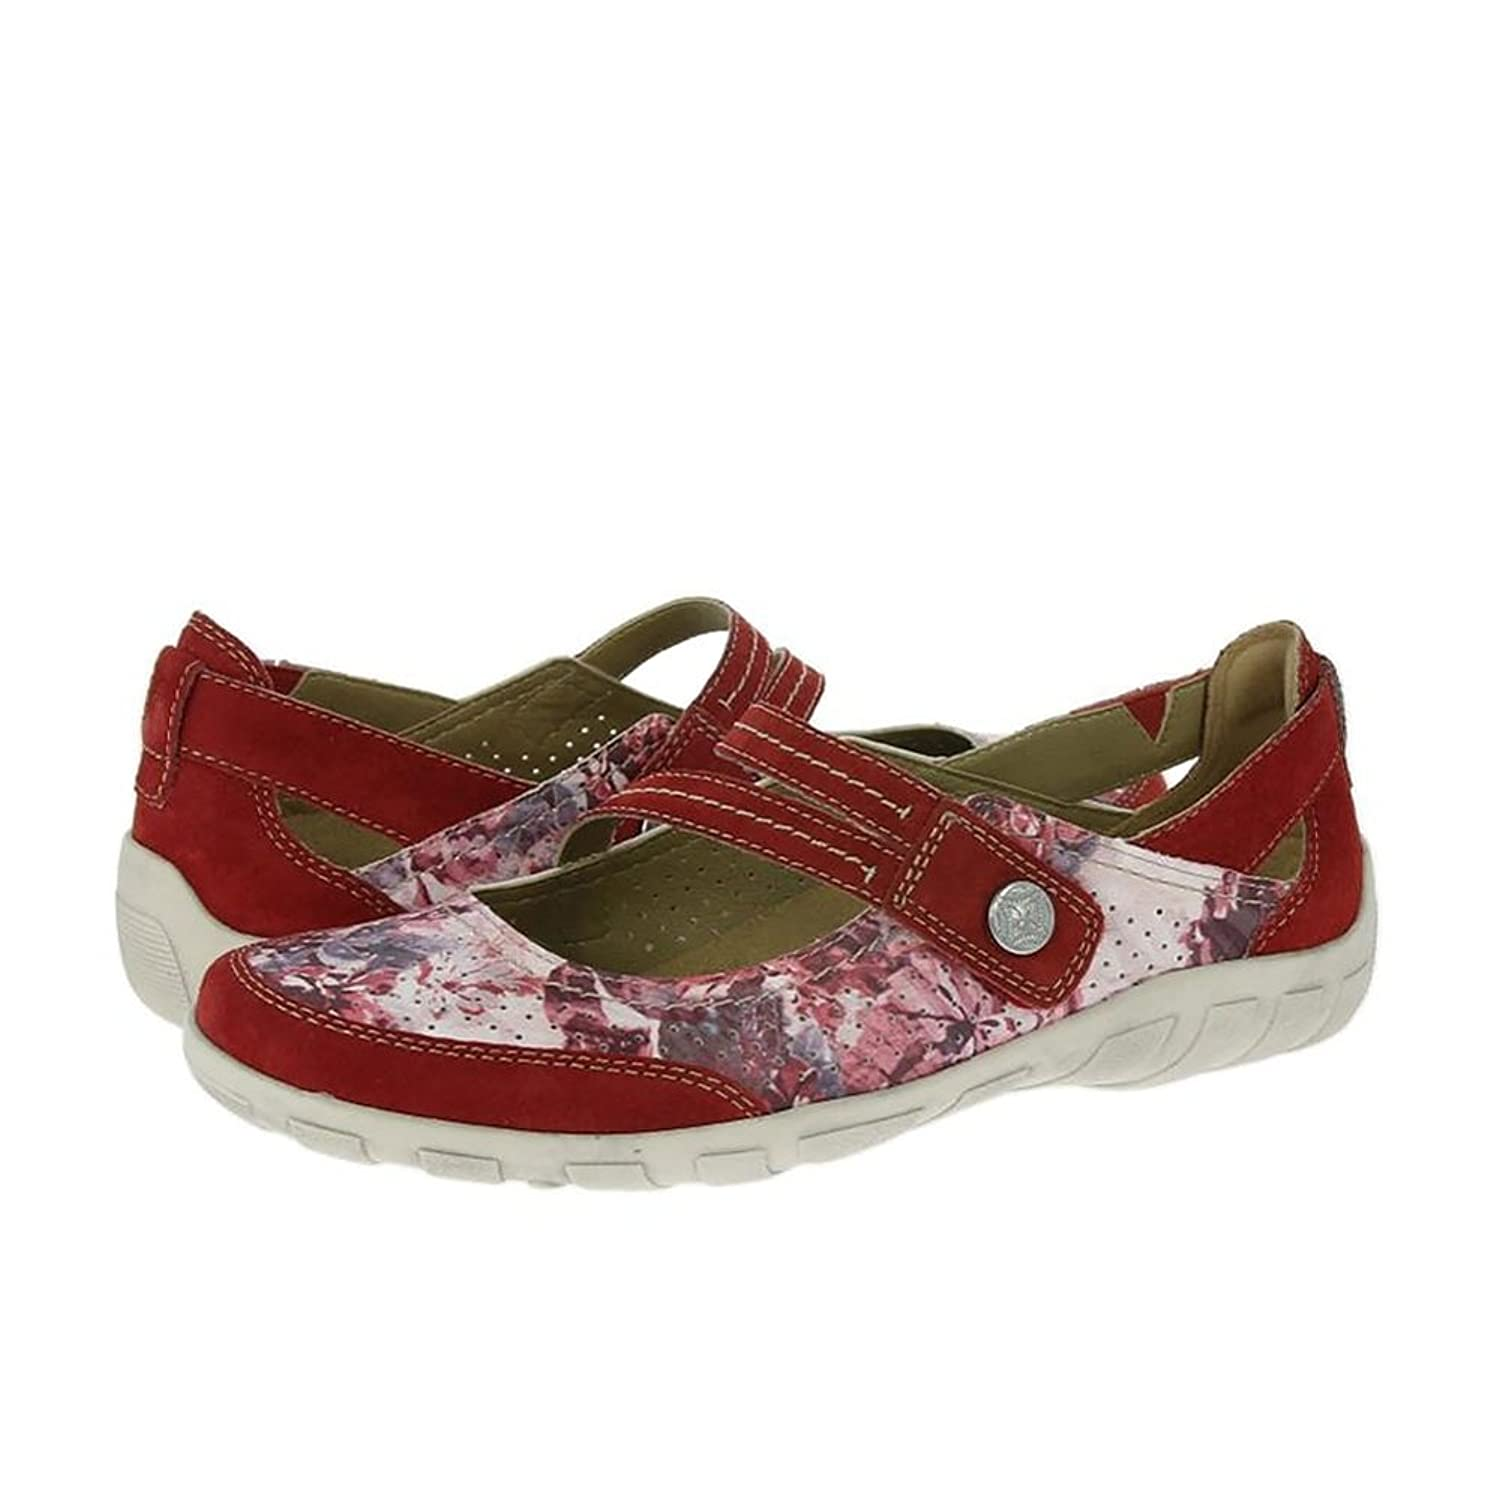 Earth Spirit Maryland Shoes Jazzy Red Amazon Shoes & Bags